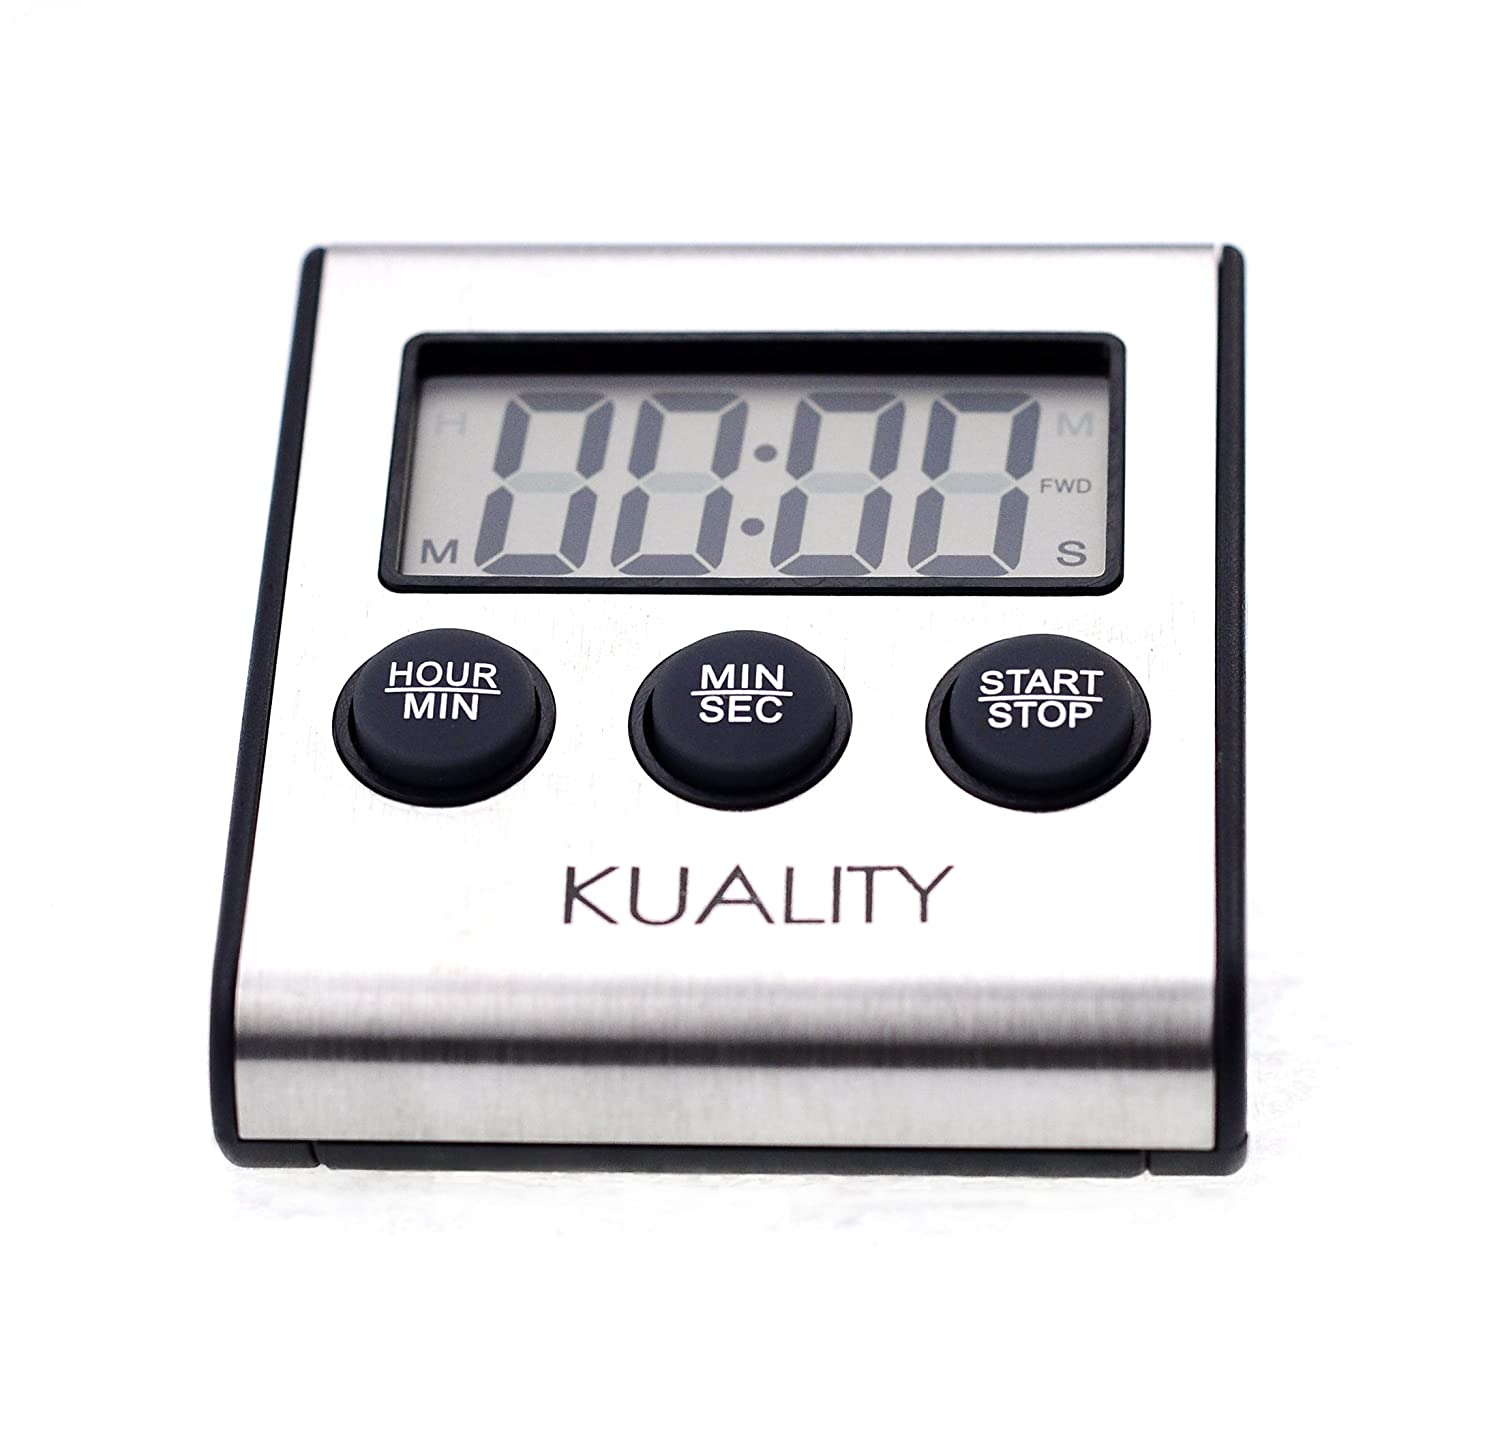 Kuality Precision Digital Cooking/Roasting Timer with Stainless Steel Panel, 1 Second to 100 Hours Easy Setup, Magnetic Back & Kickstand